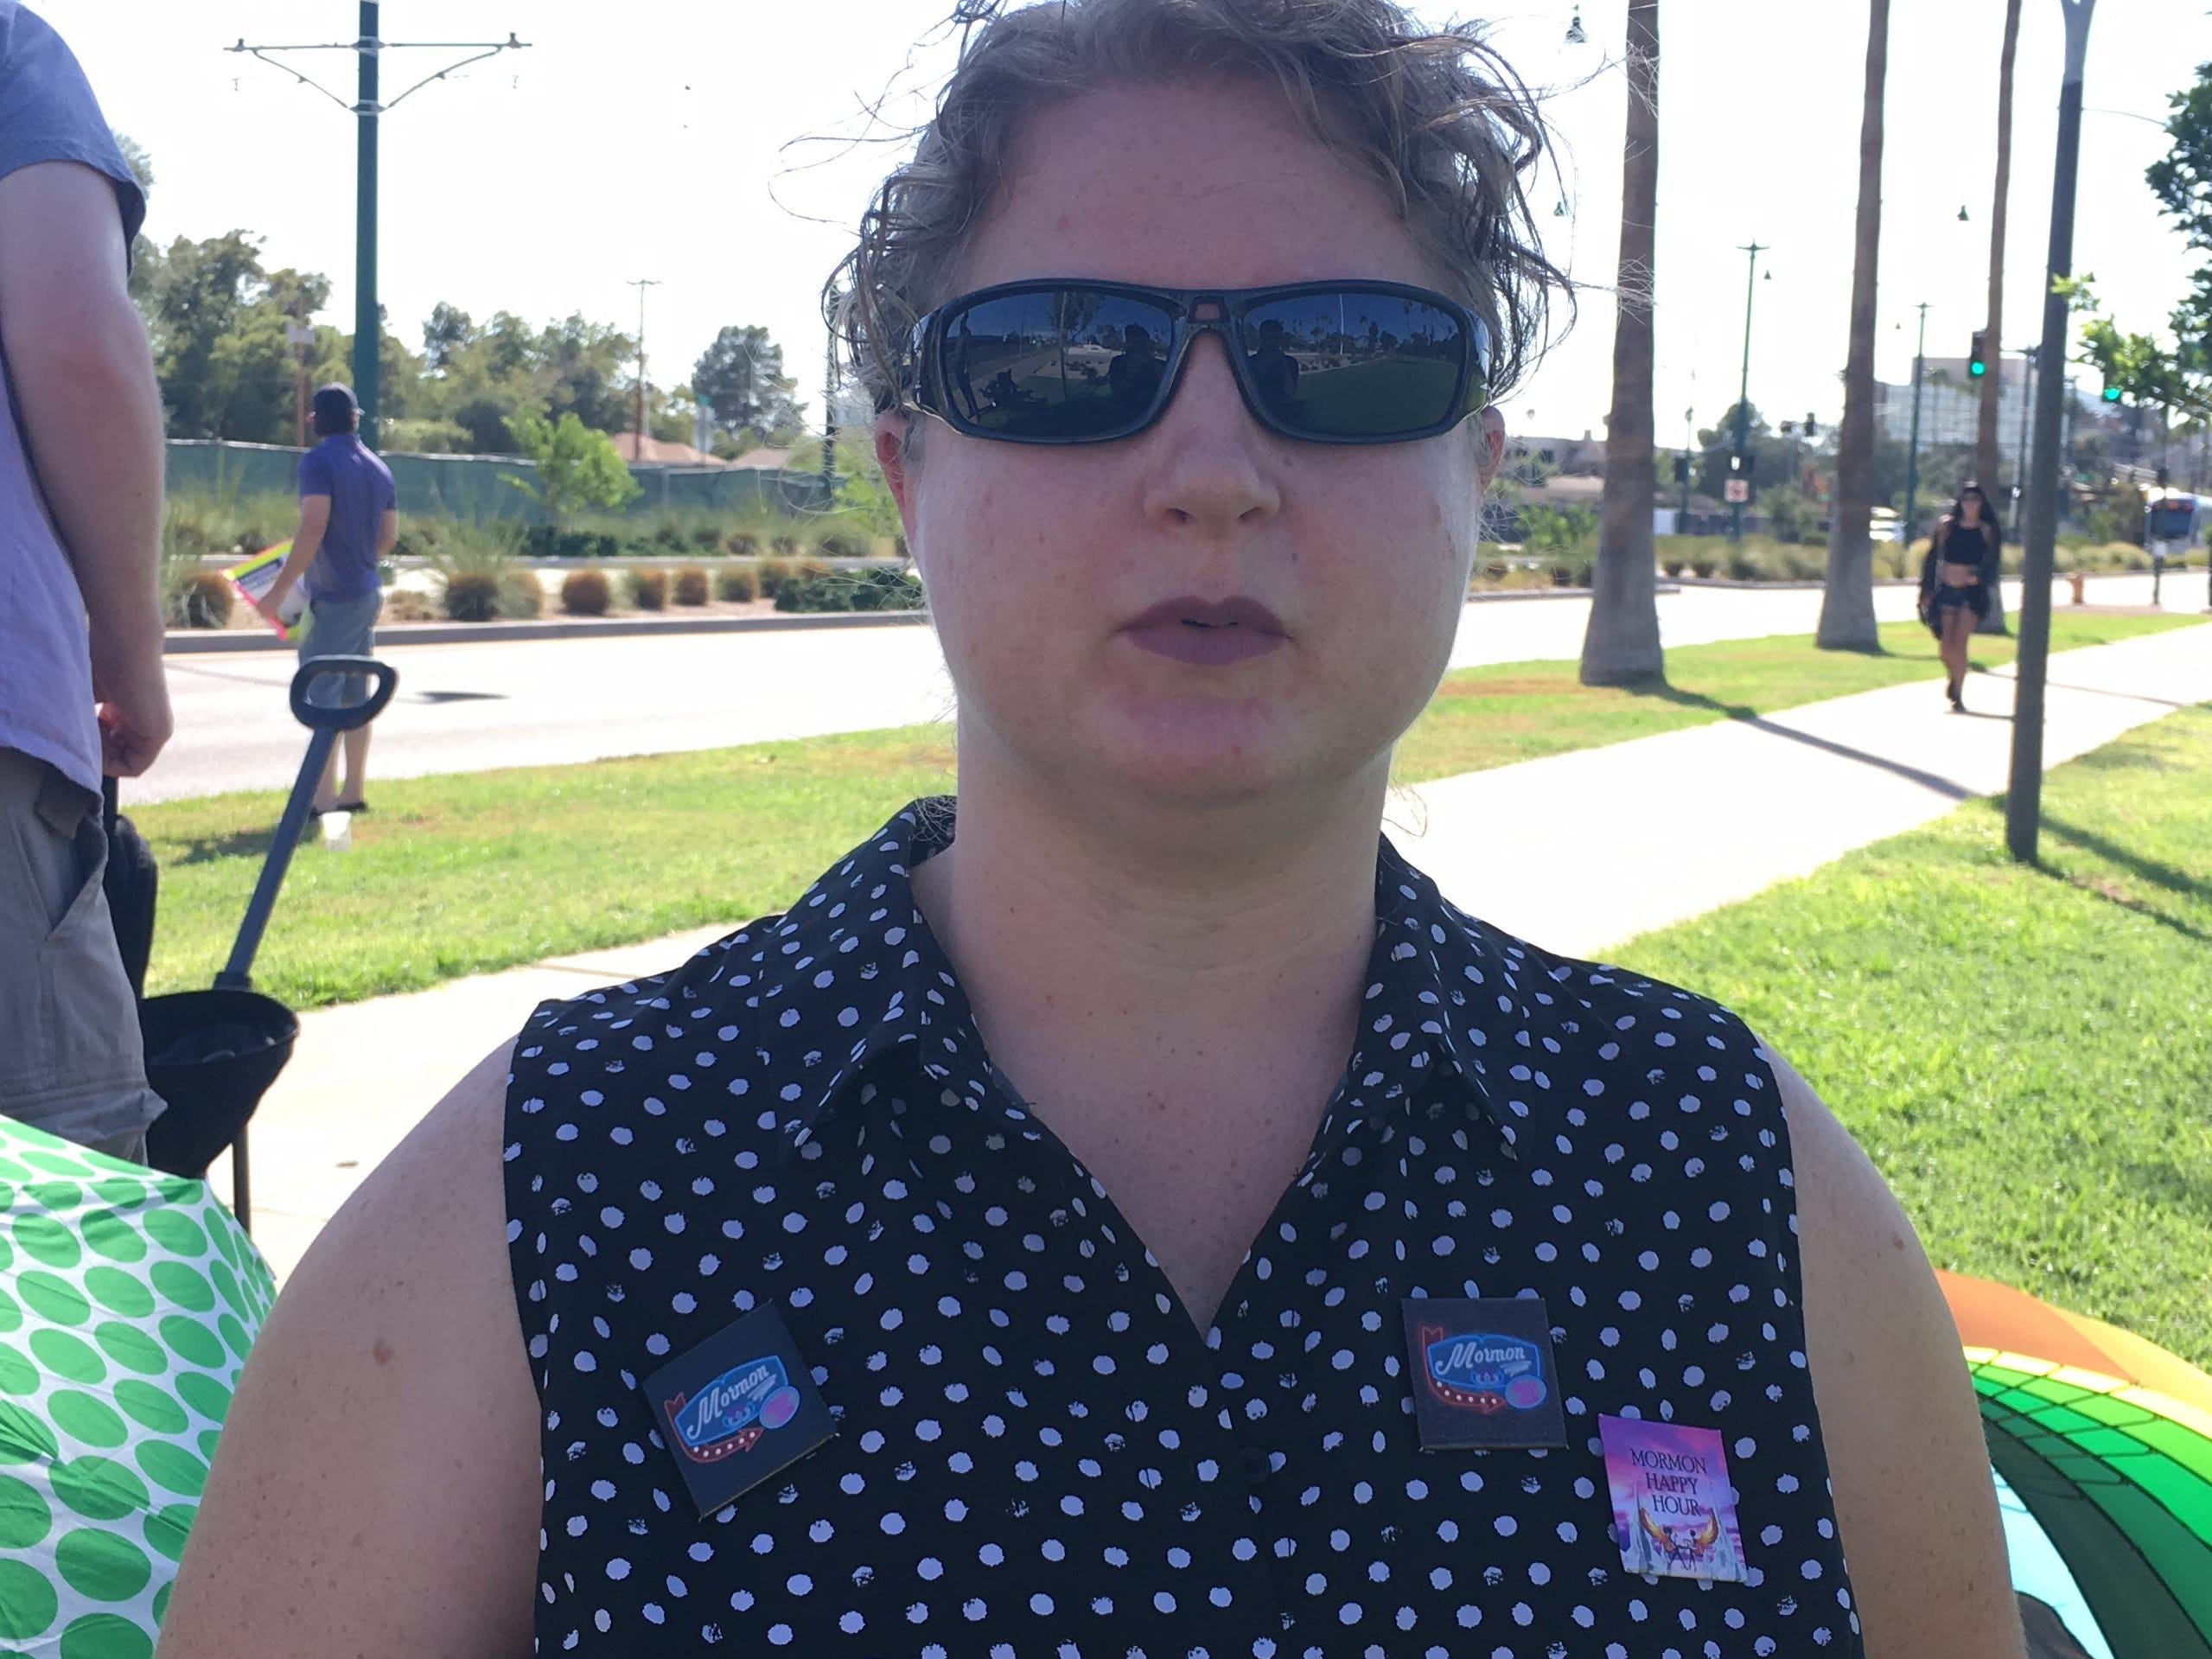 Colleen Payne Dietz, an active LDS church member, organized the Mesa event alongside national protests, Aug. 9, 2018.